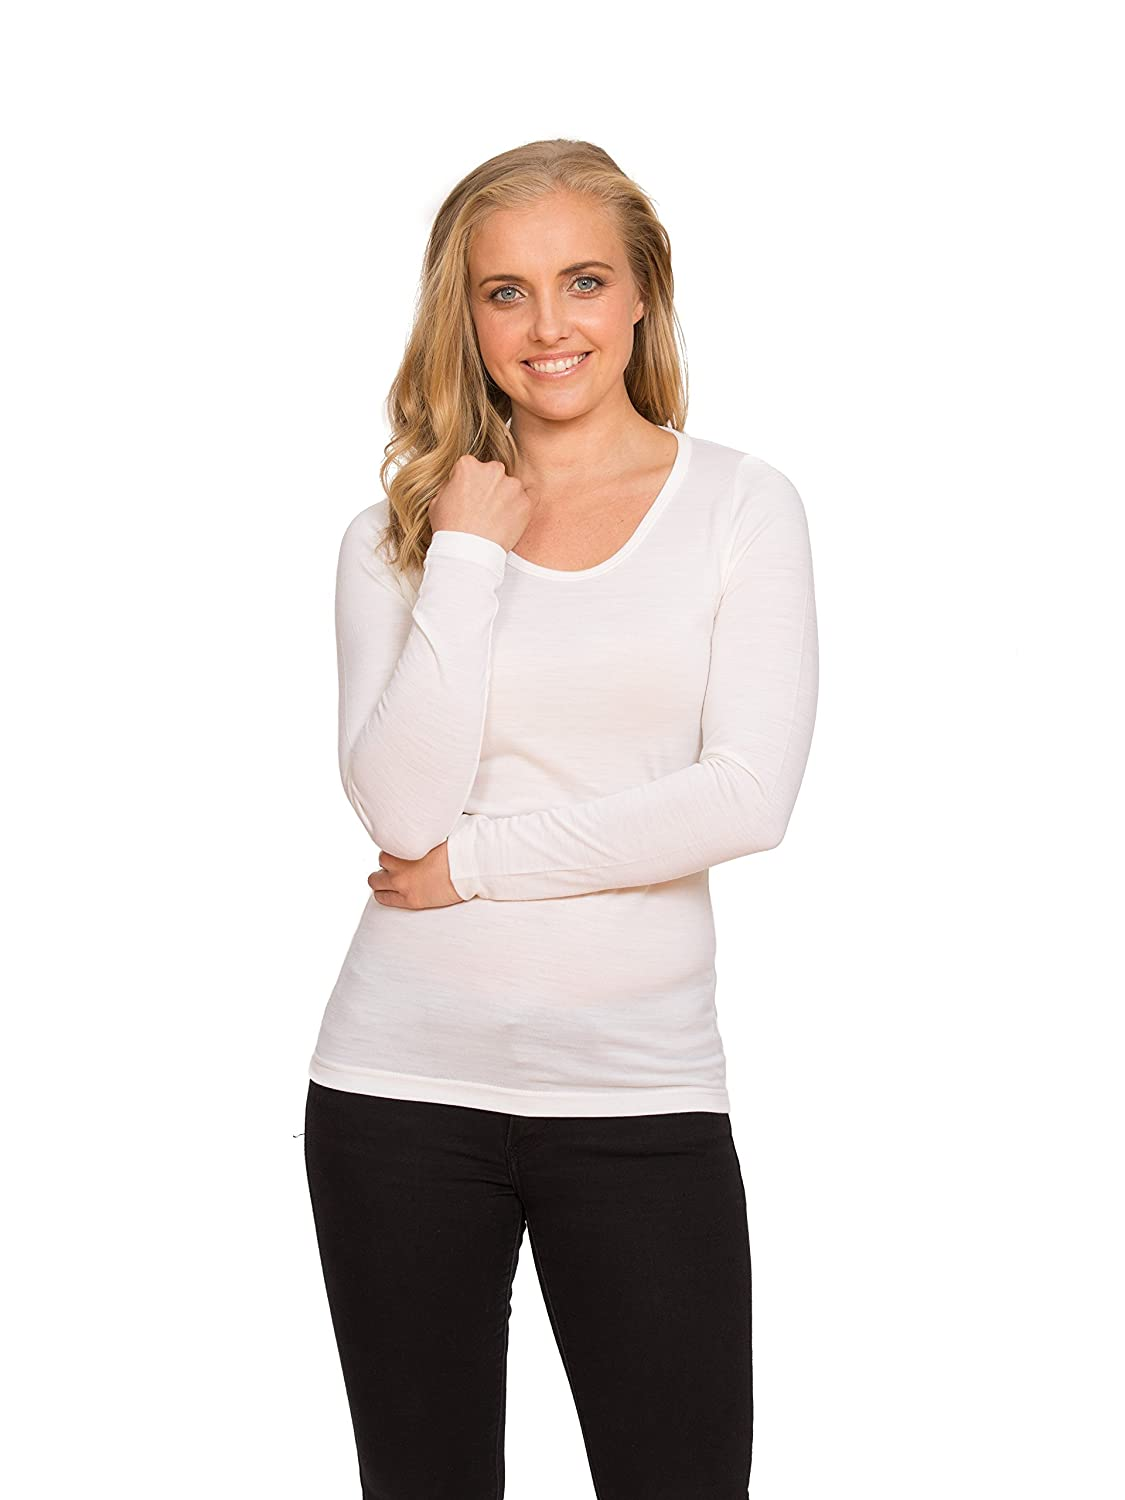 From Merino With Love - 100% Merino Wool Long Sleeve Scoop Thermal - Made in New Zealand